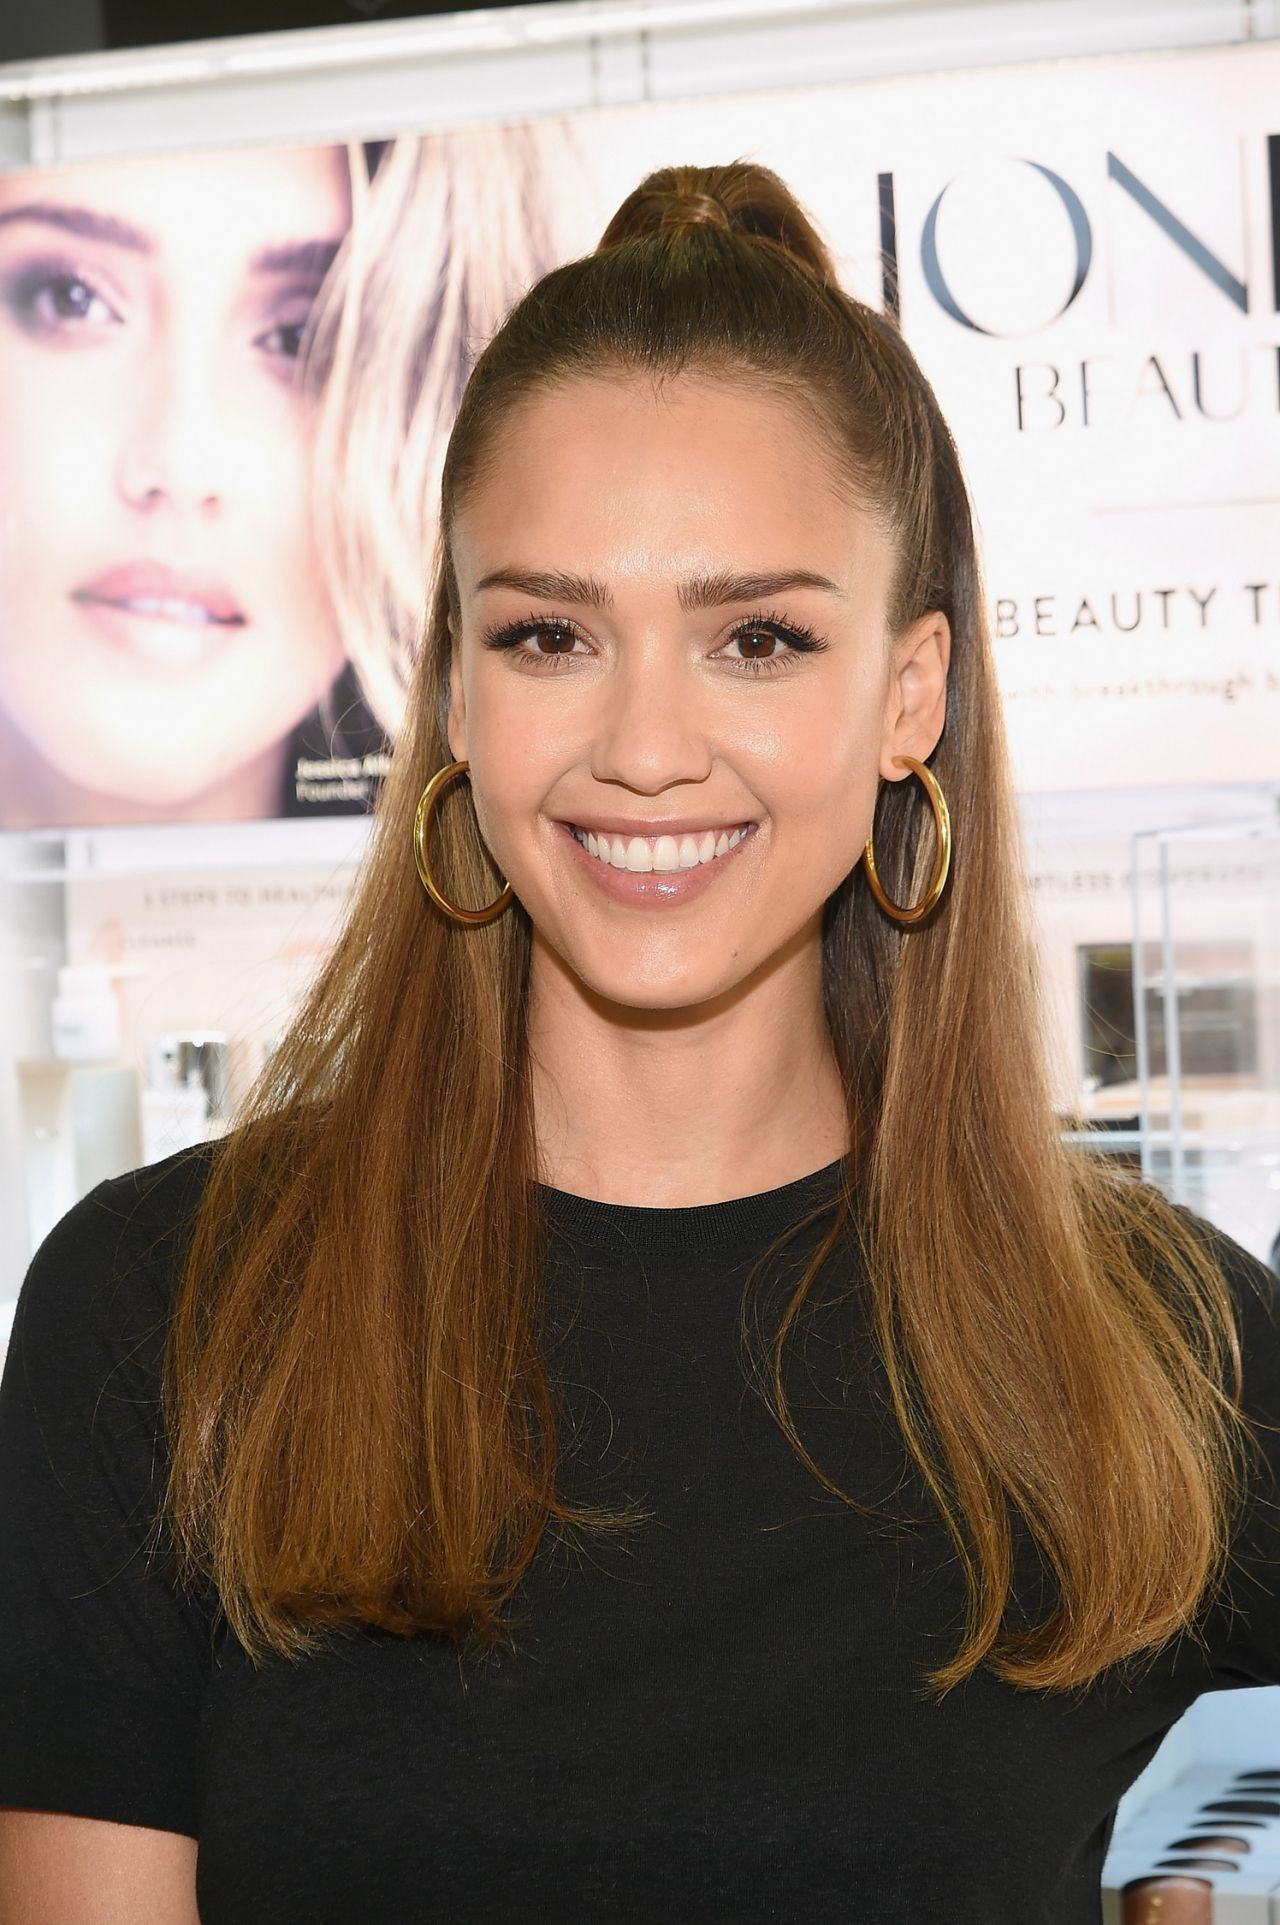 Jessica Alba Surprises Target Guests With Honest Beauty Makeovers in New Jersey 4/4/2017